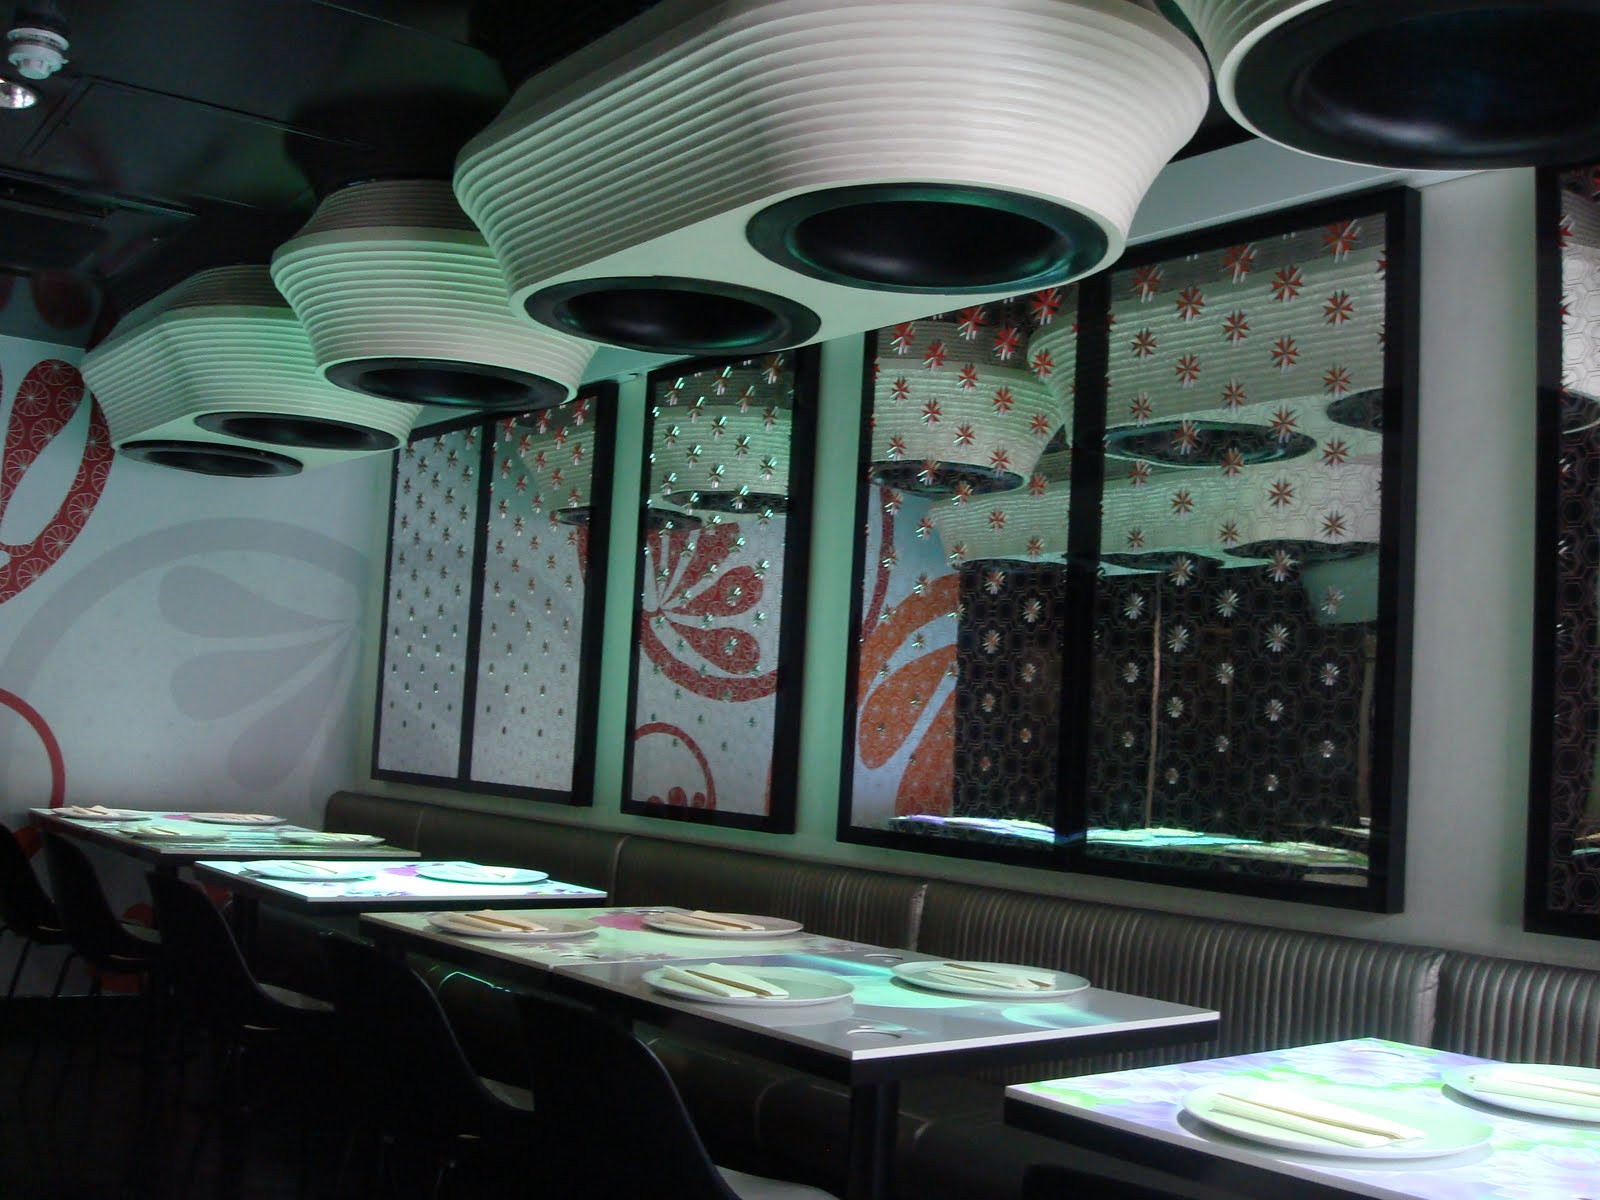 inamo soho japanese restaurant london interactive table menu light up (3)